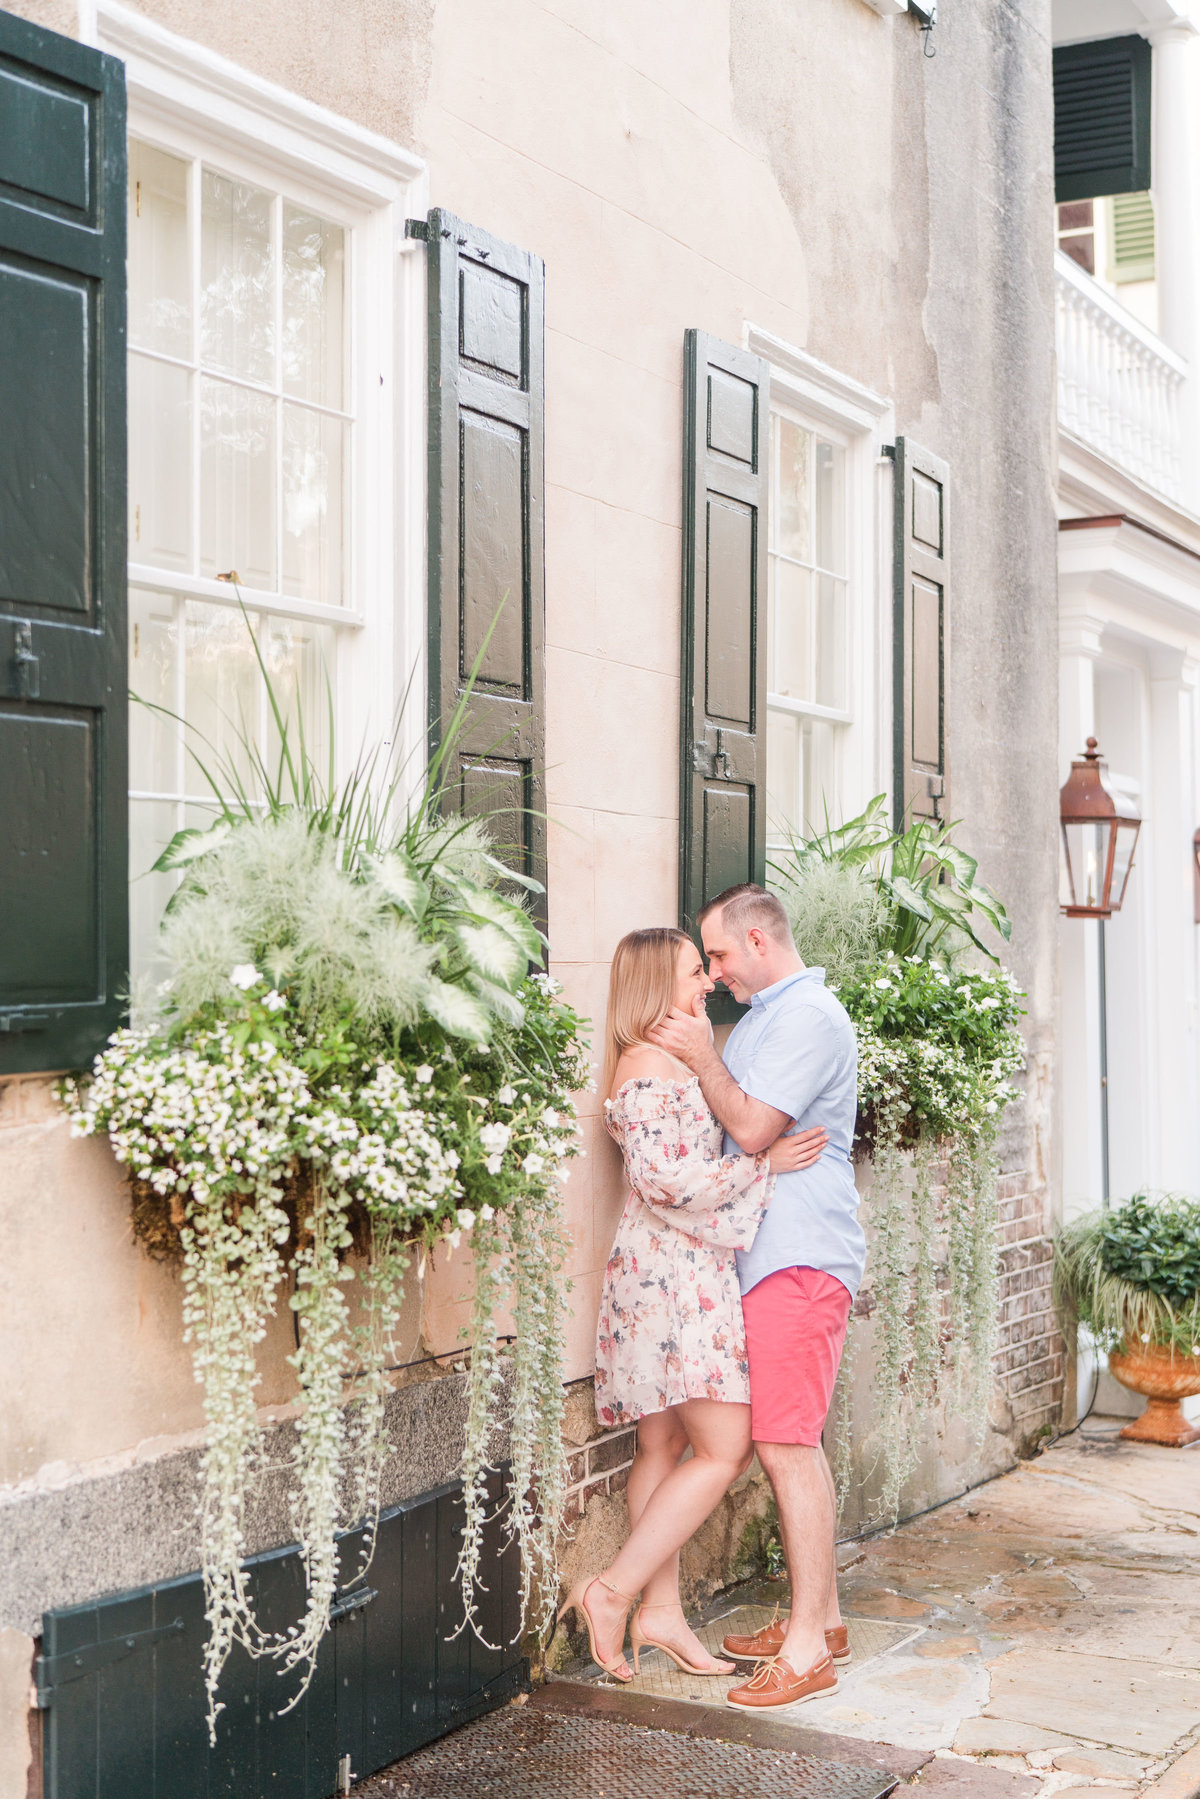 Kate Dye Photography Wedding Engagement Lifestyle Charleston South Carolina Photographer Bright Airy Colorful13